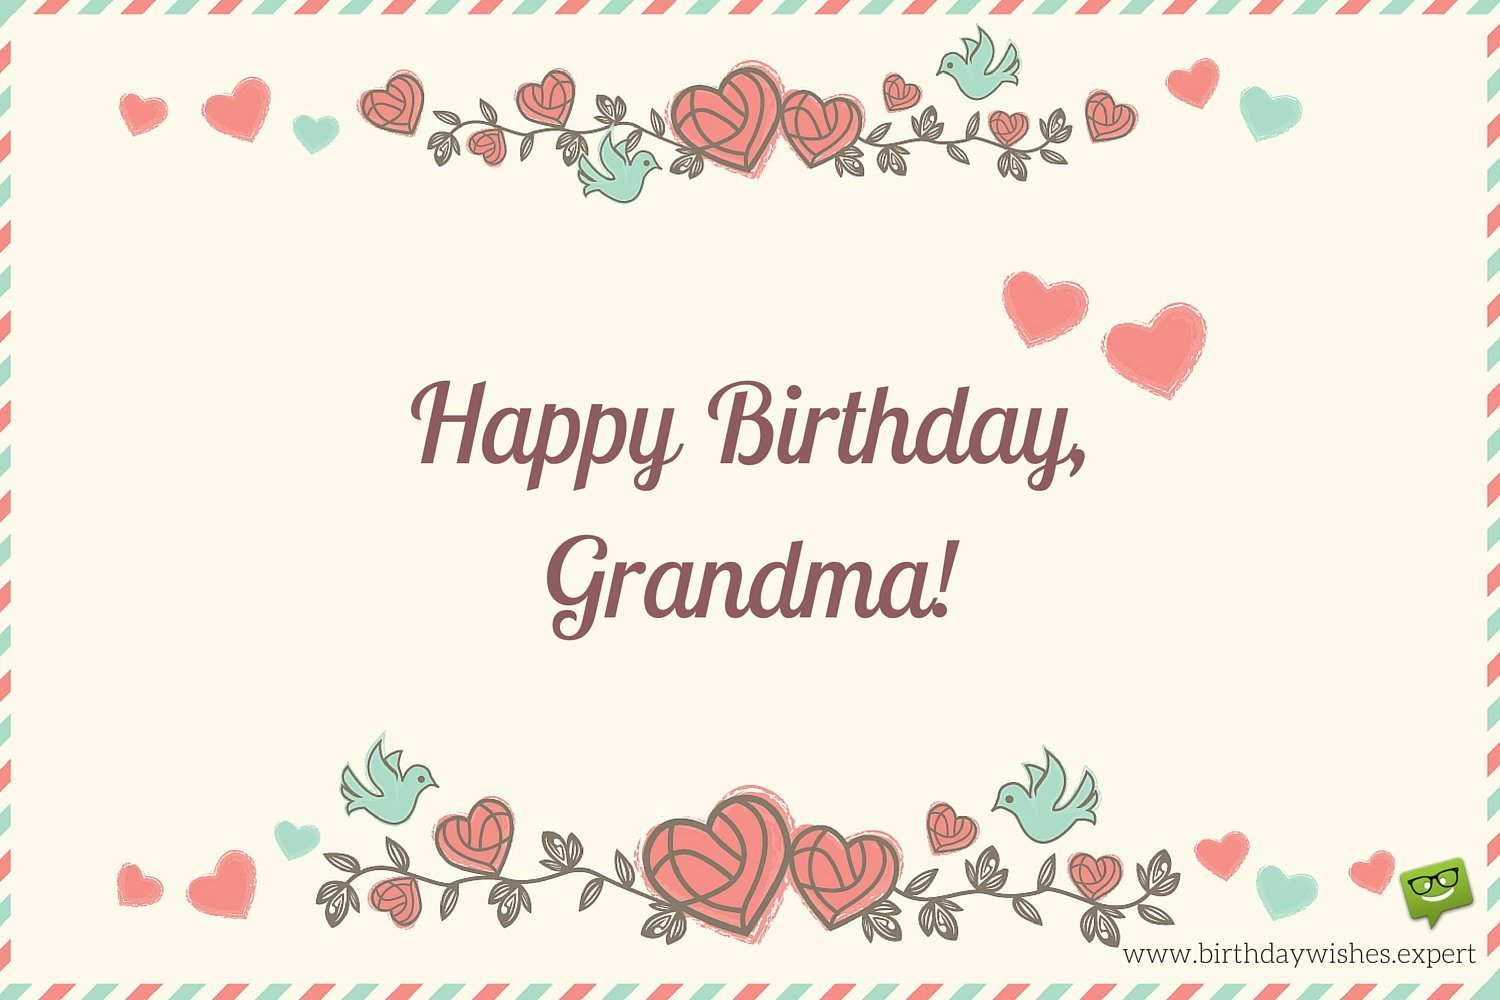 Happy Birthday Grandma On Image Of An Old Envelope With Flowers And